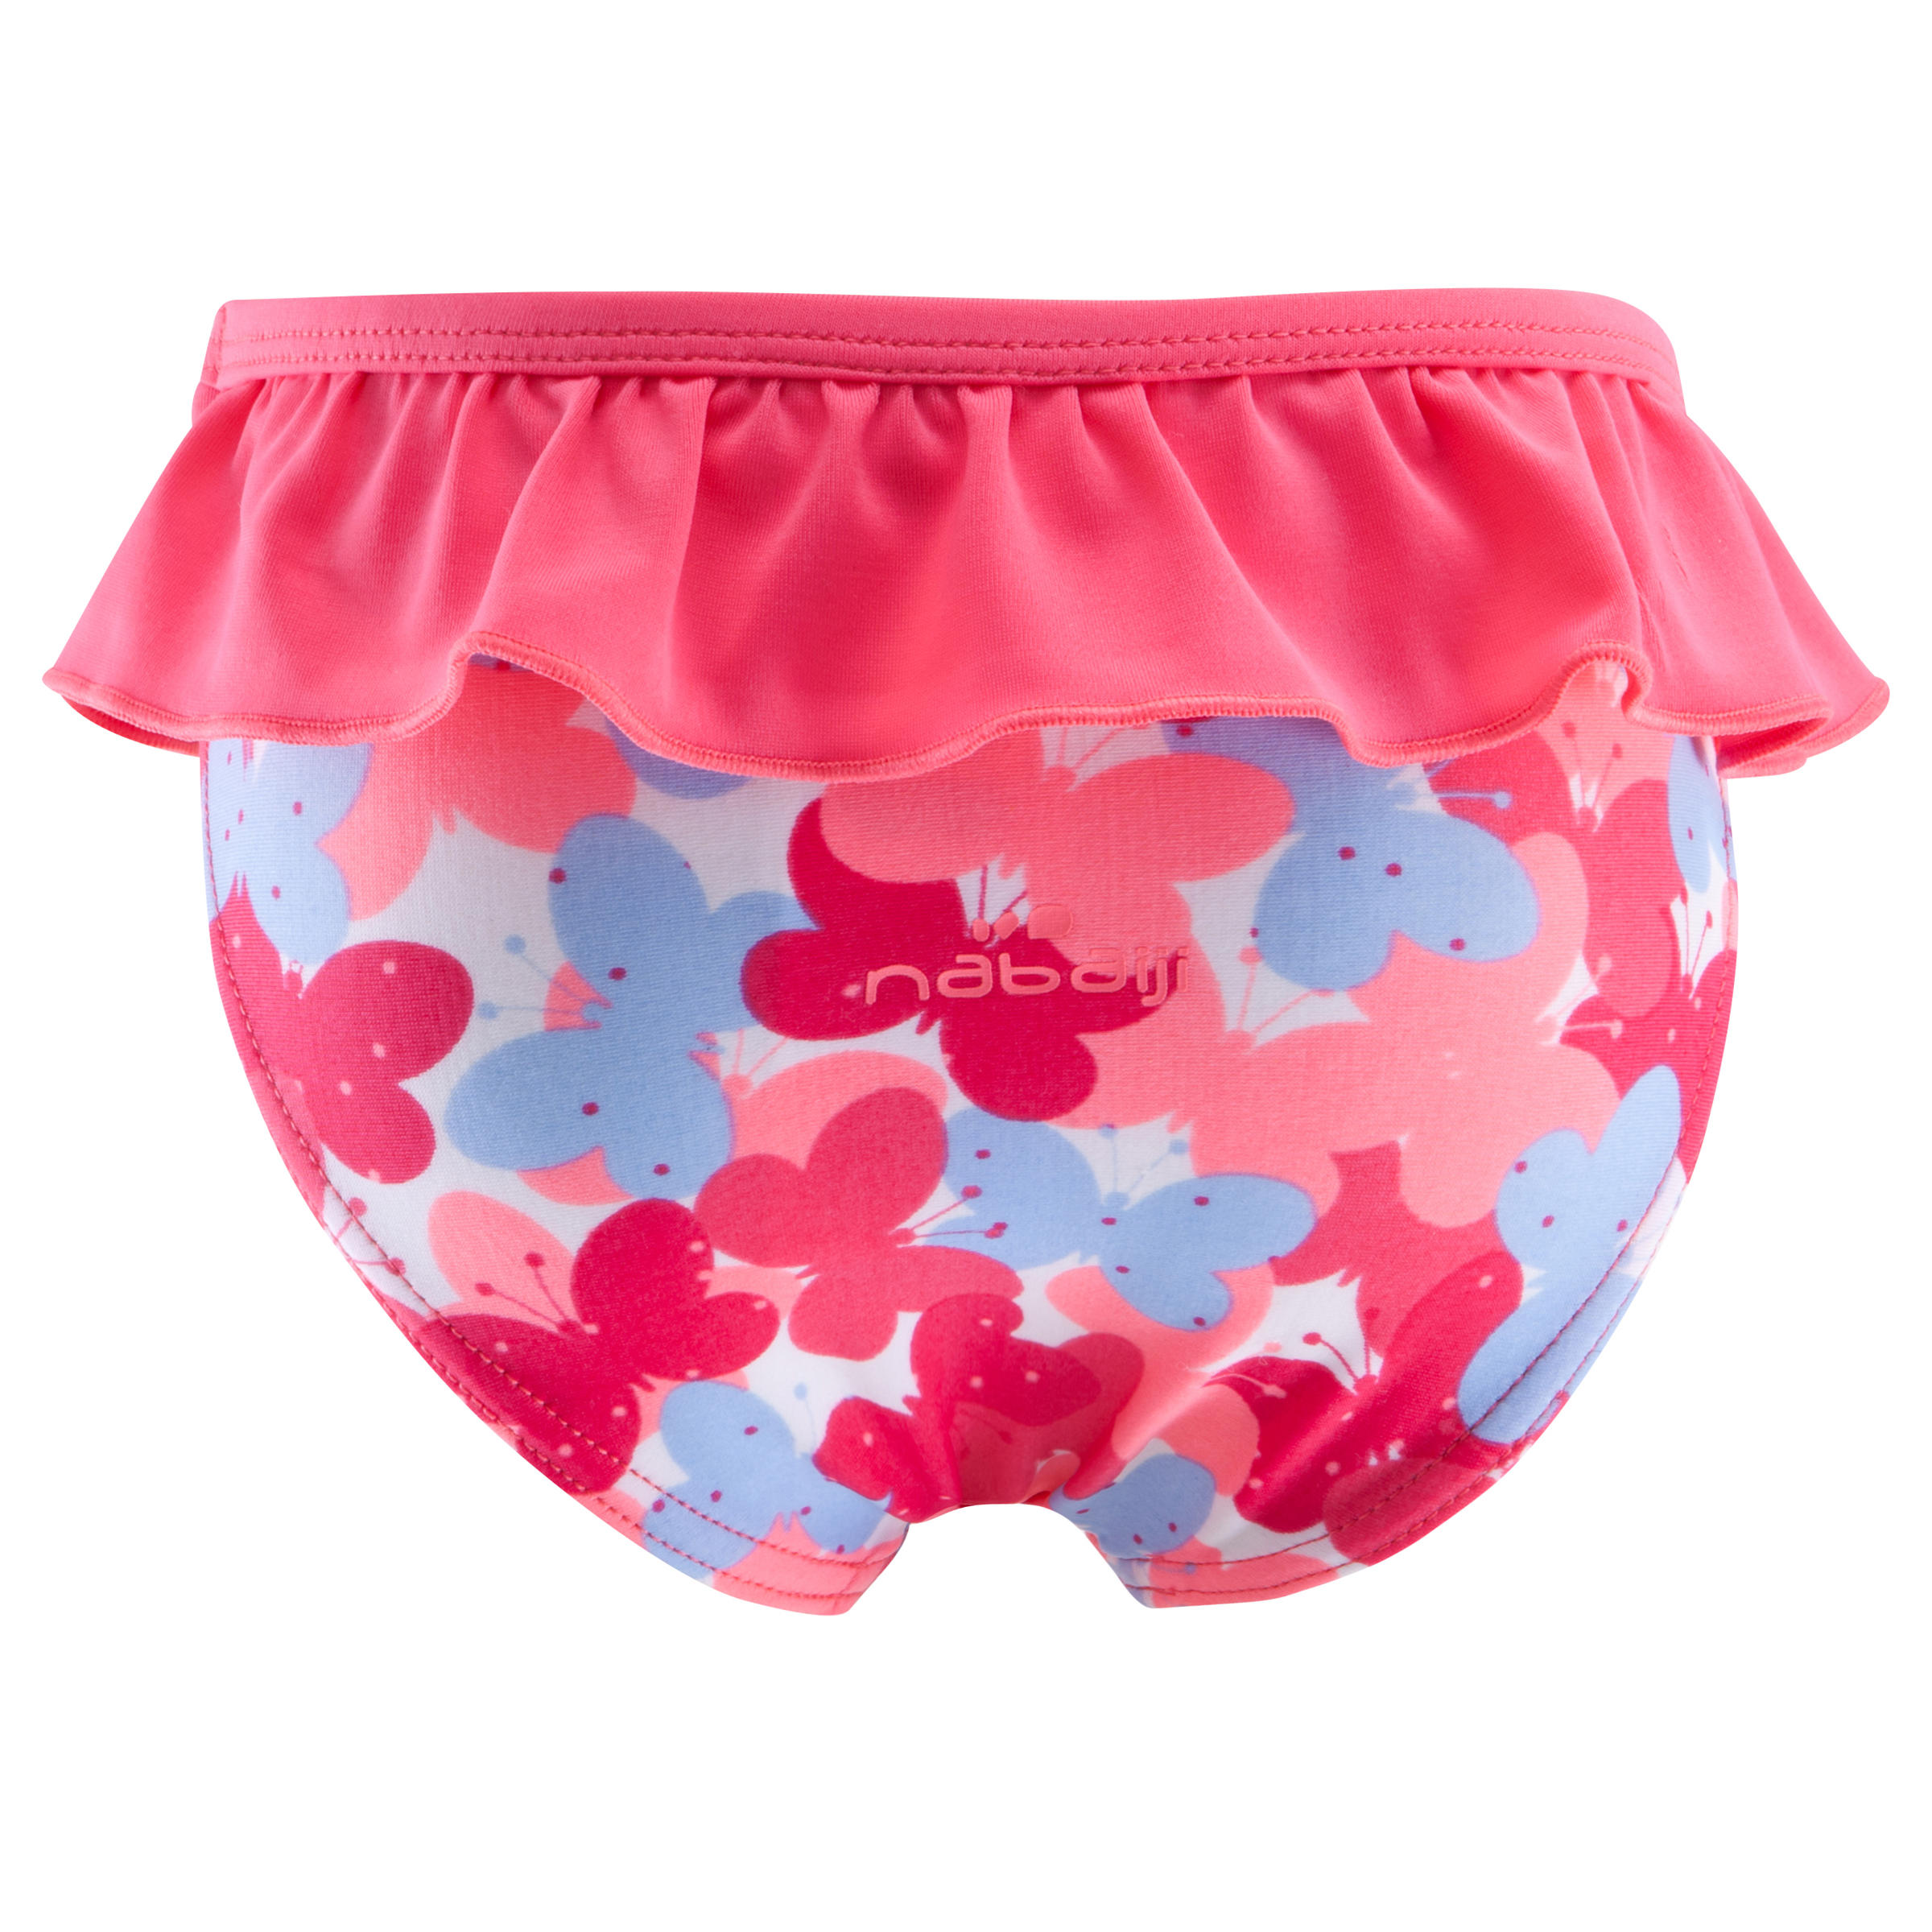 Baby Girls' One-Piece Swim Bottoms - All Fly Pink